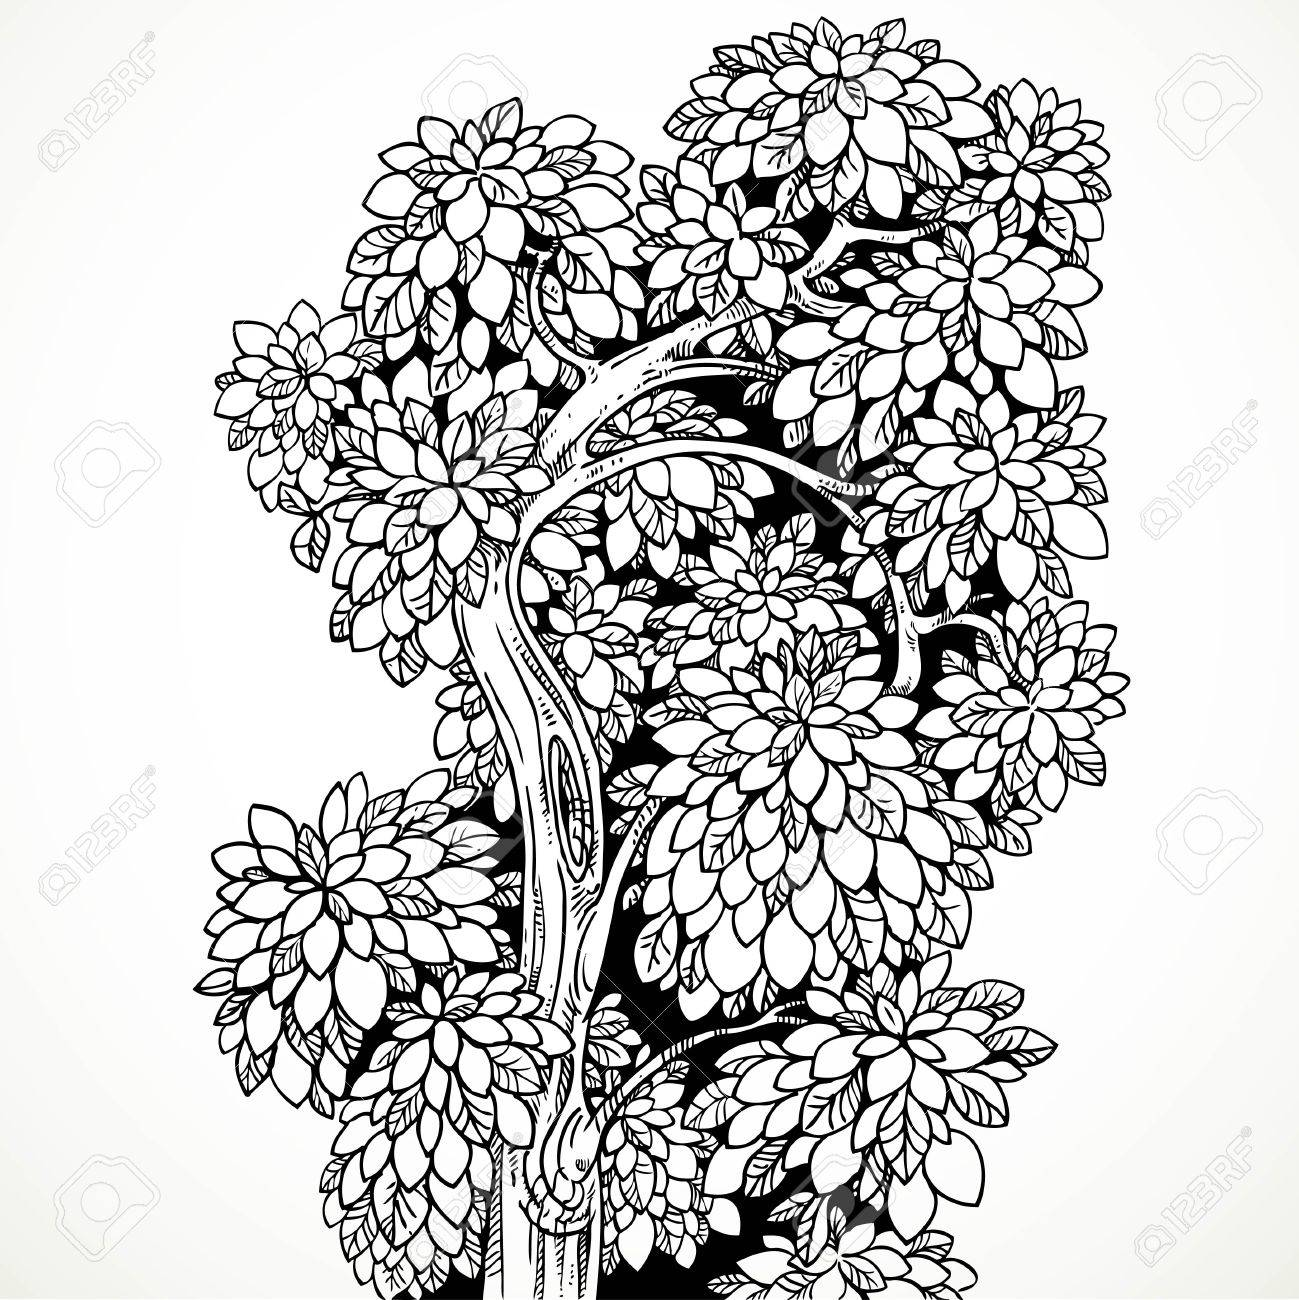 1299x1300 Graphically Drawing Black Ink Tree With Graceful Curved Bushy